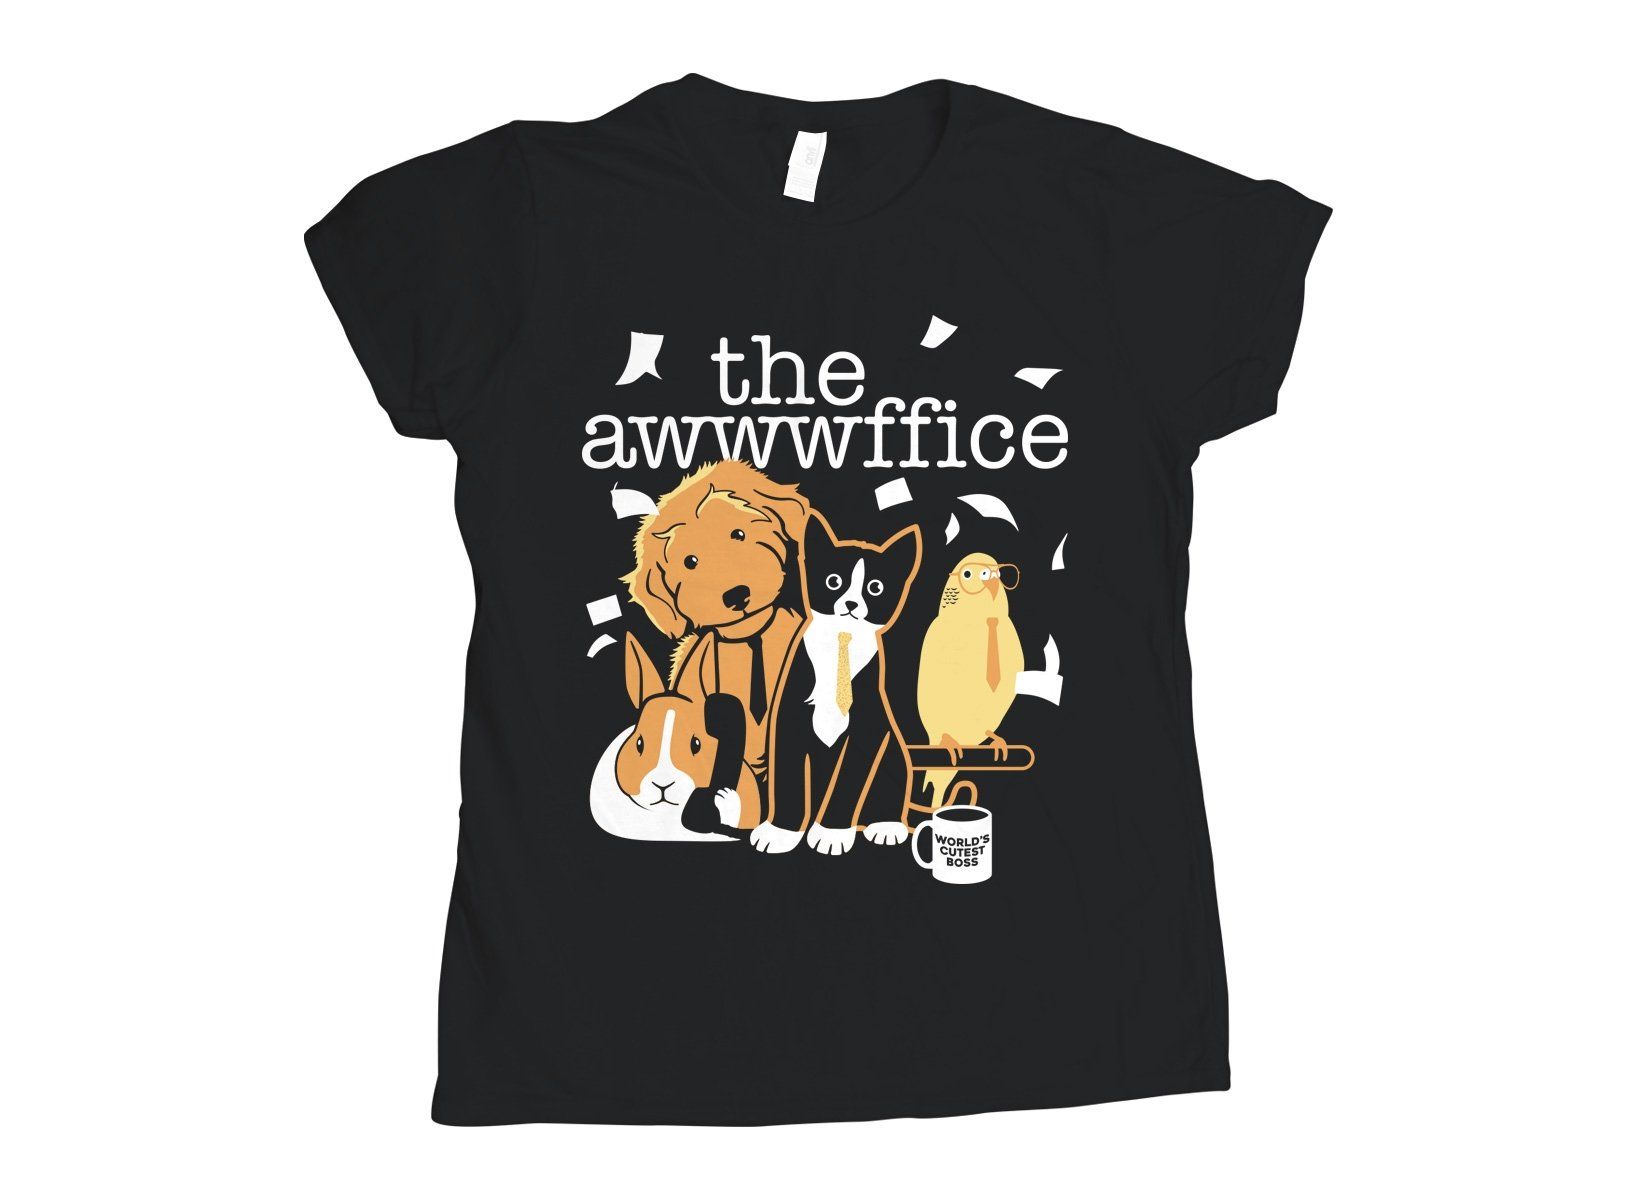 The Awwwffice on Womens T-Shirt